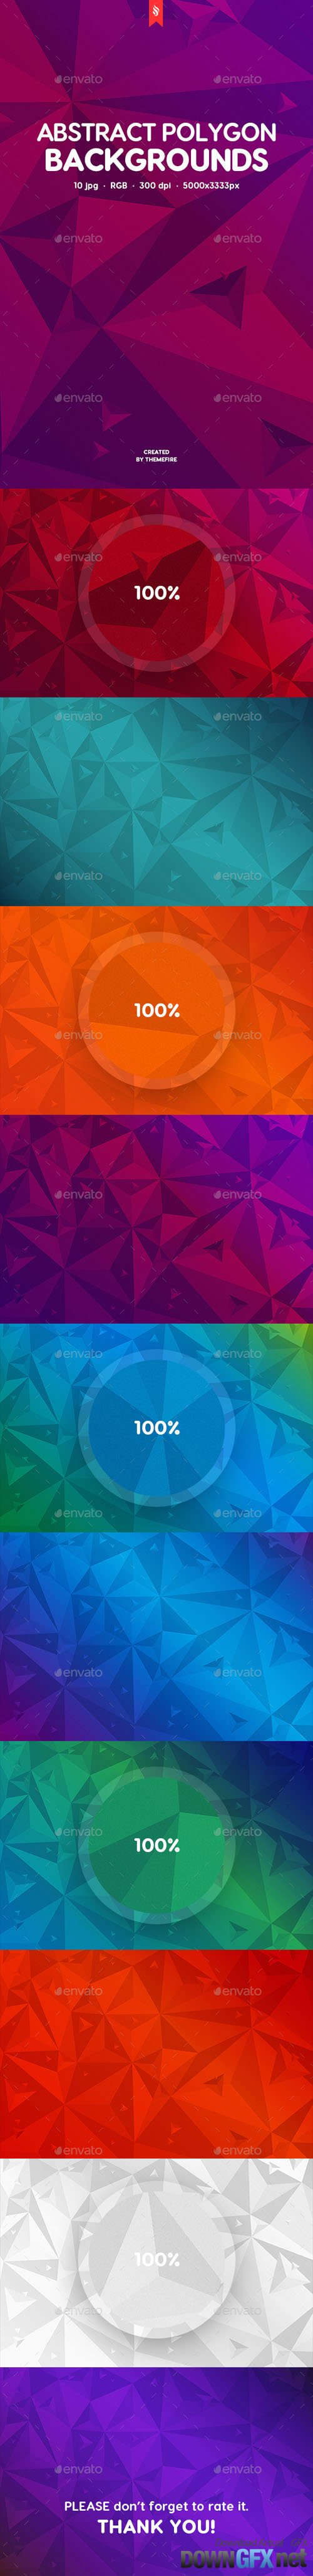 Abstract Polygonal Backgrounds 19680026